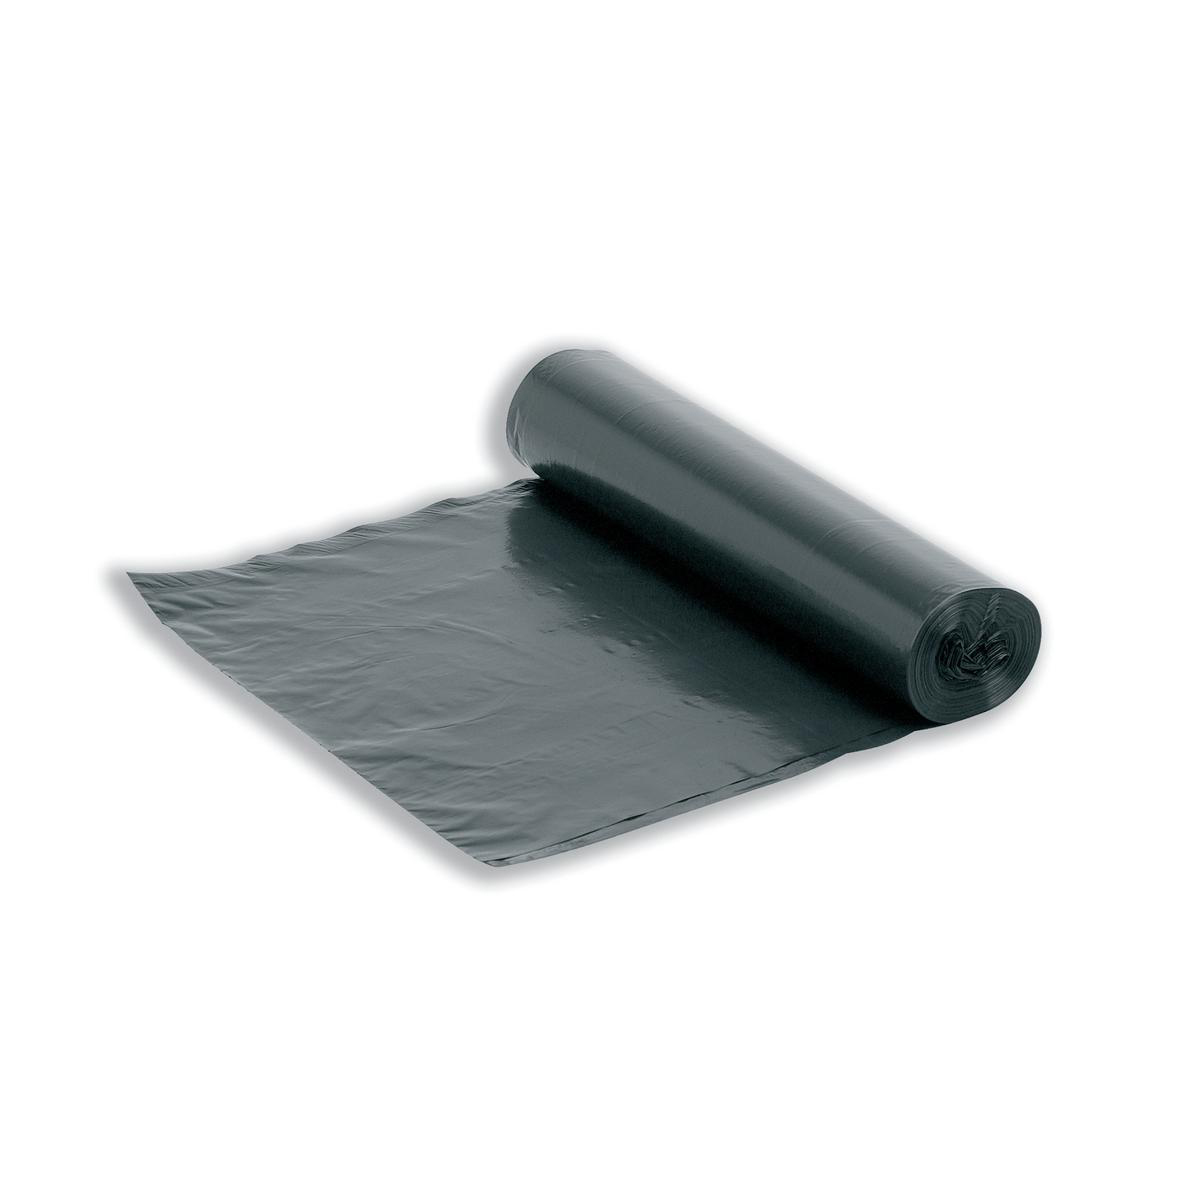 Image for 5 Star Facilities Bin Liners Heavy Duty 95 Litre Capacity W370/705xH860mm Black [Roll 300]